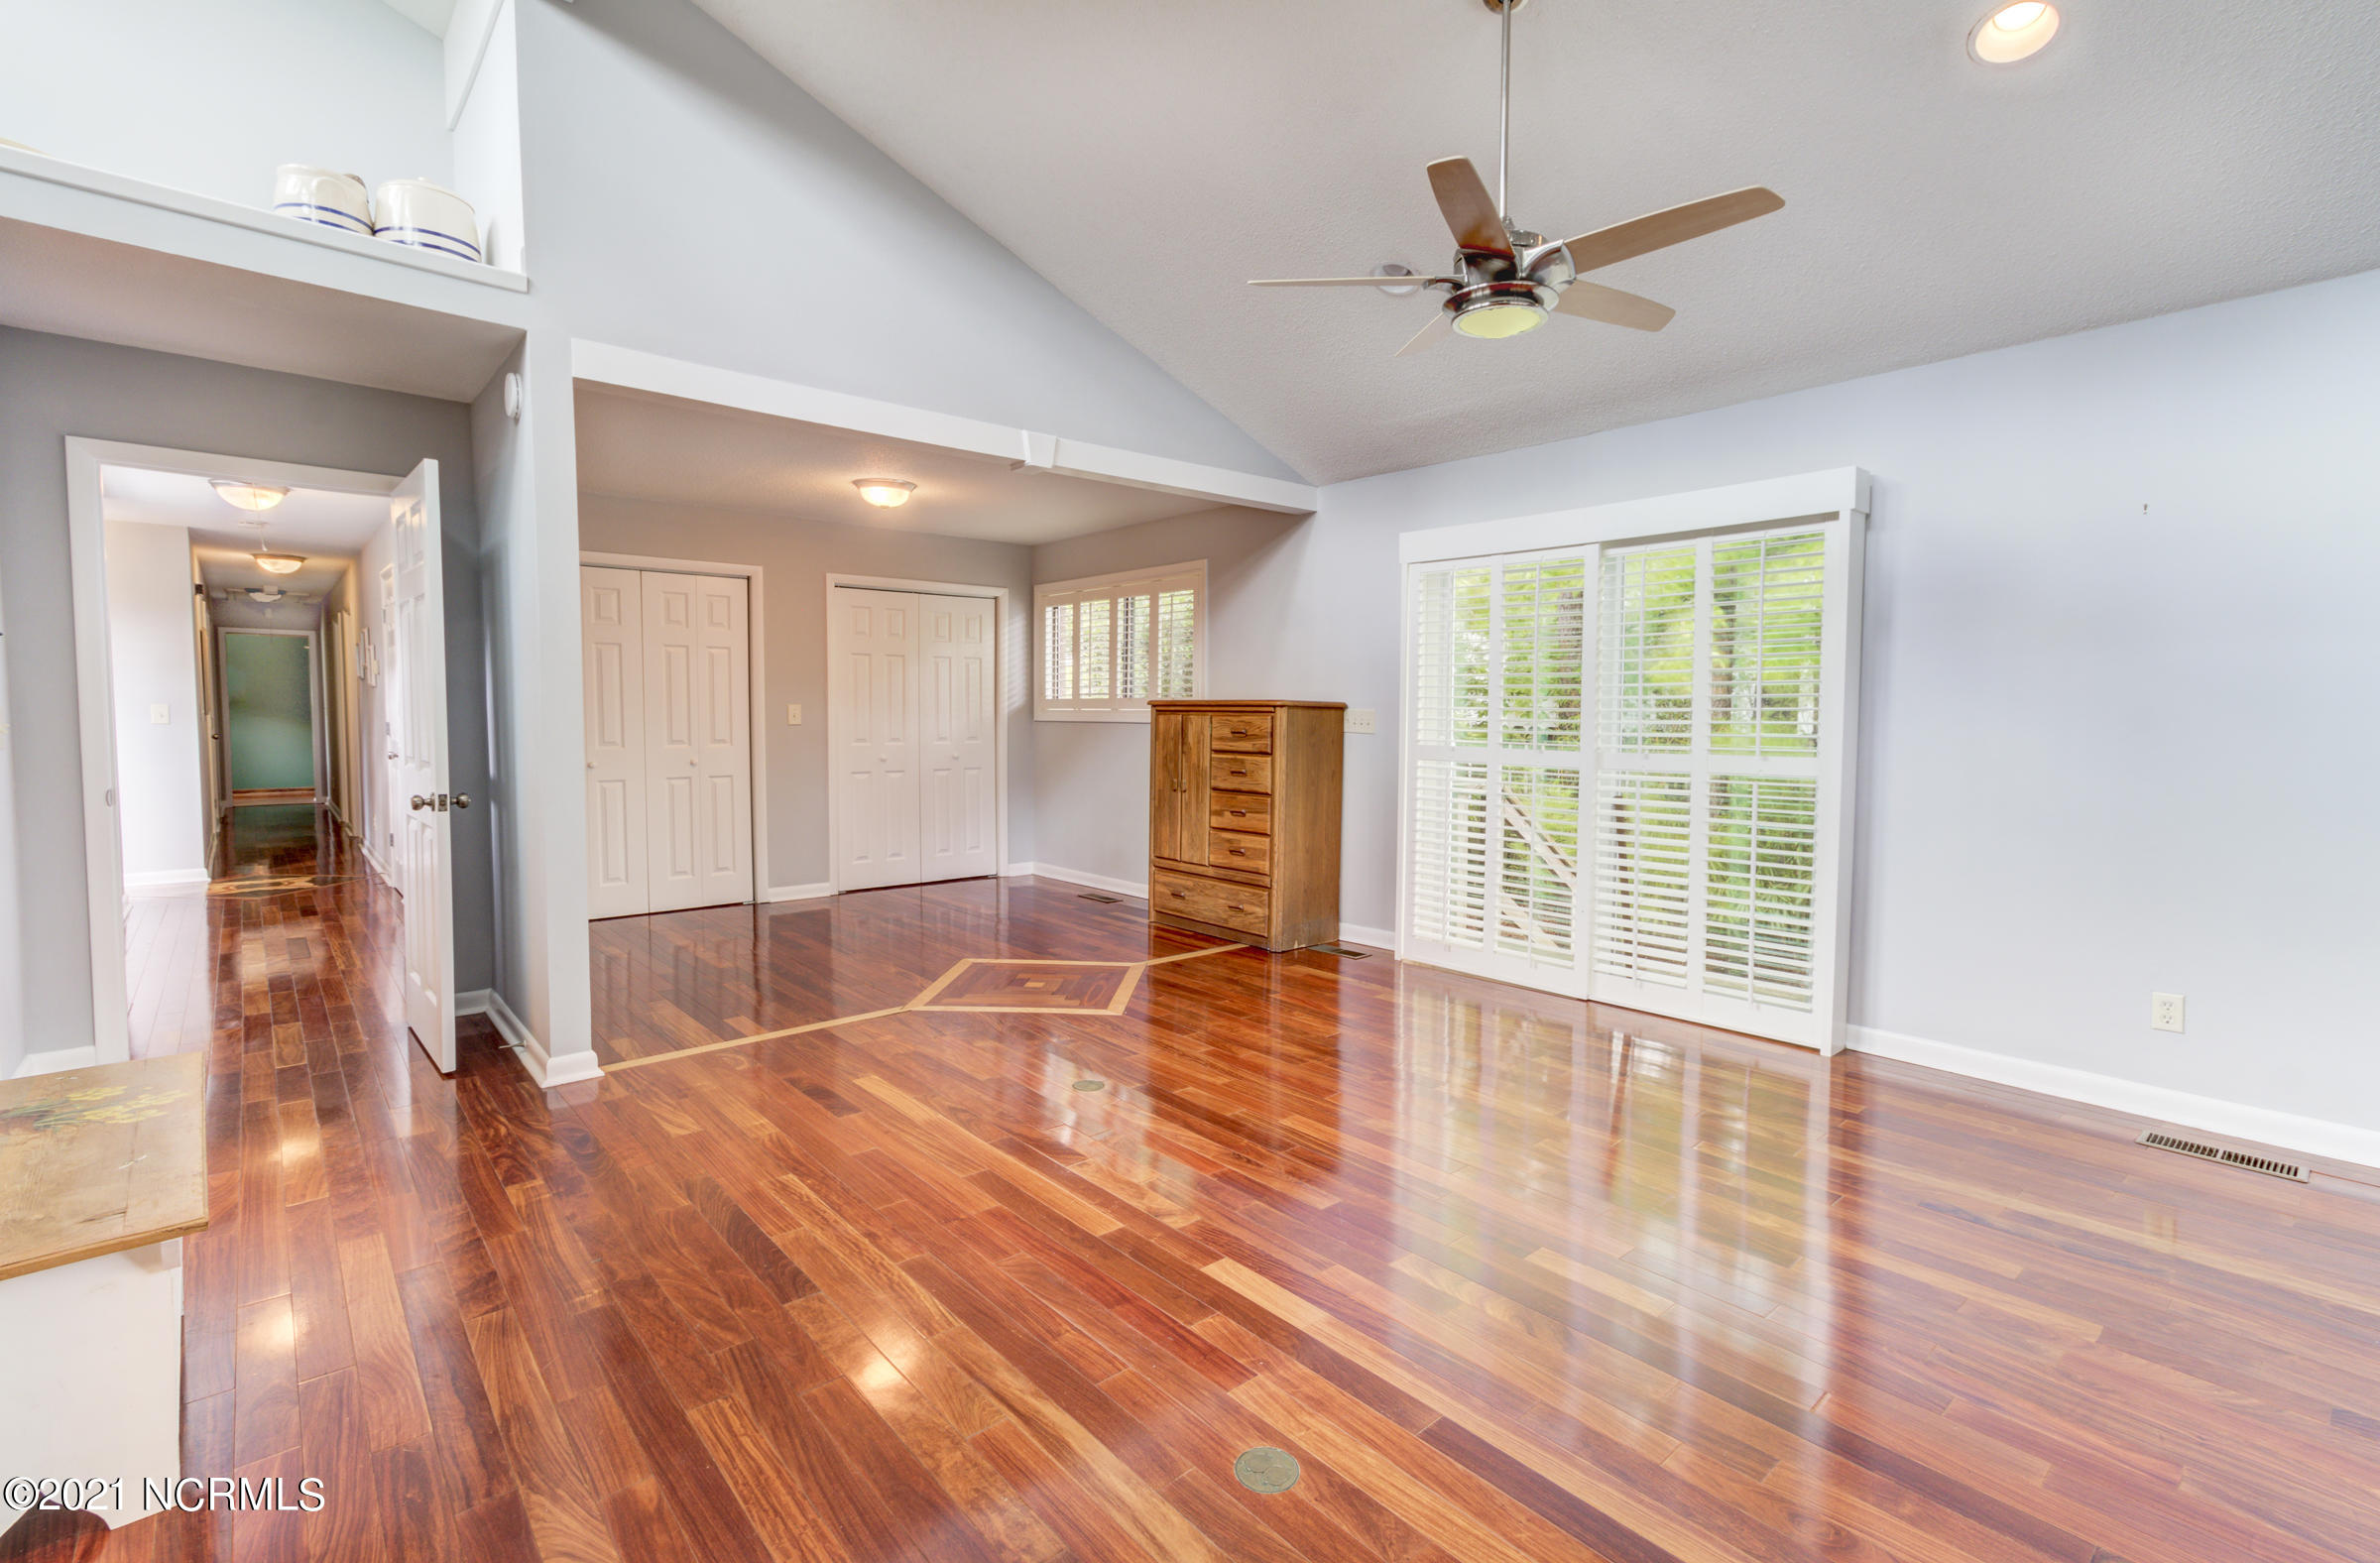 2131 Gloucester Place, Wilmington, North Carolina 28403, 4 Bedrooms Bedrooms, 10 Rooms Rooms,3 BathroomsBathrooms,Single family residence,For sale,Gloucester,100263873